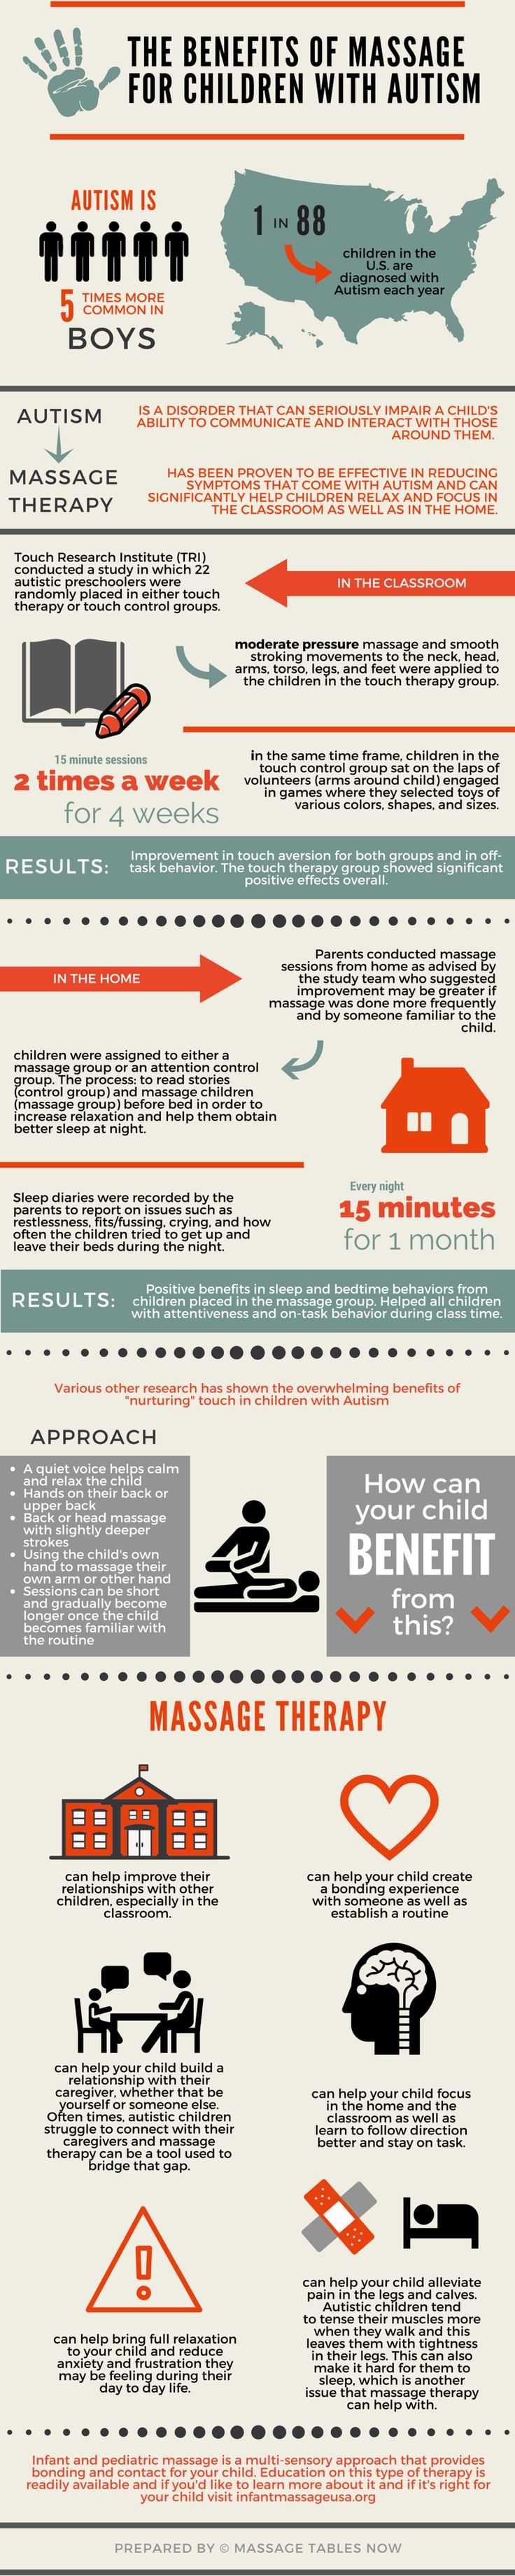 The research for the benefits of massage in children with Autism is incredible and overwhelming. This infographic discusses the studies done and the benefits that can come from adding massage therapy to the routine of Autistic children.